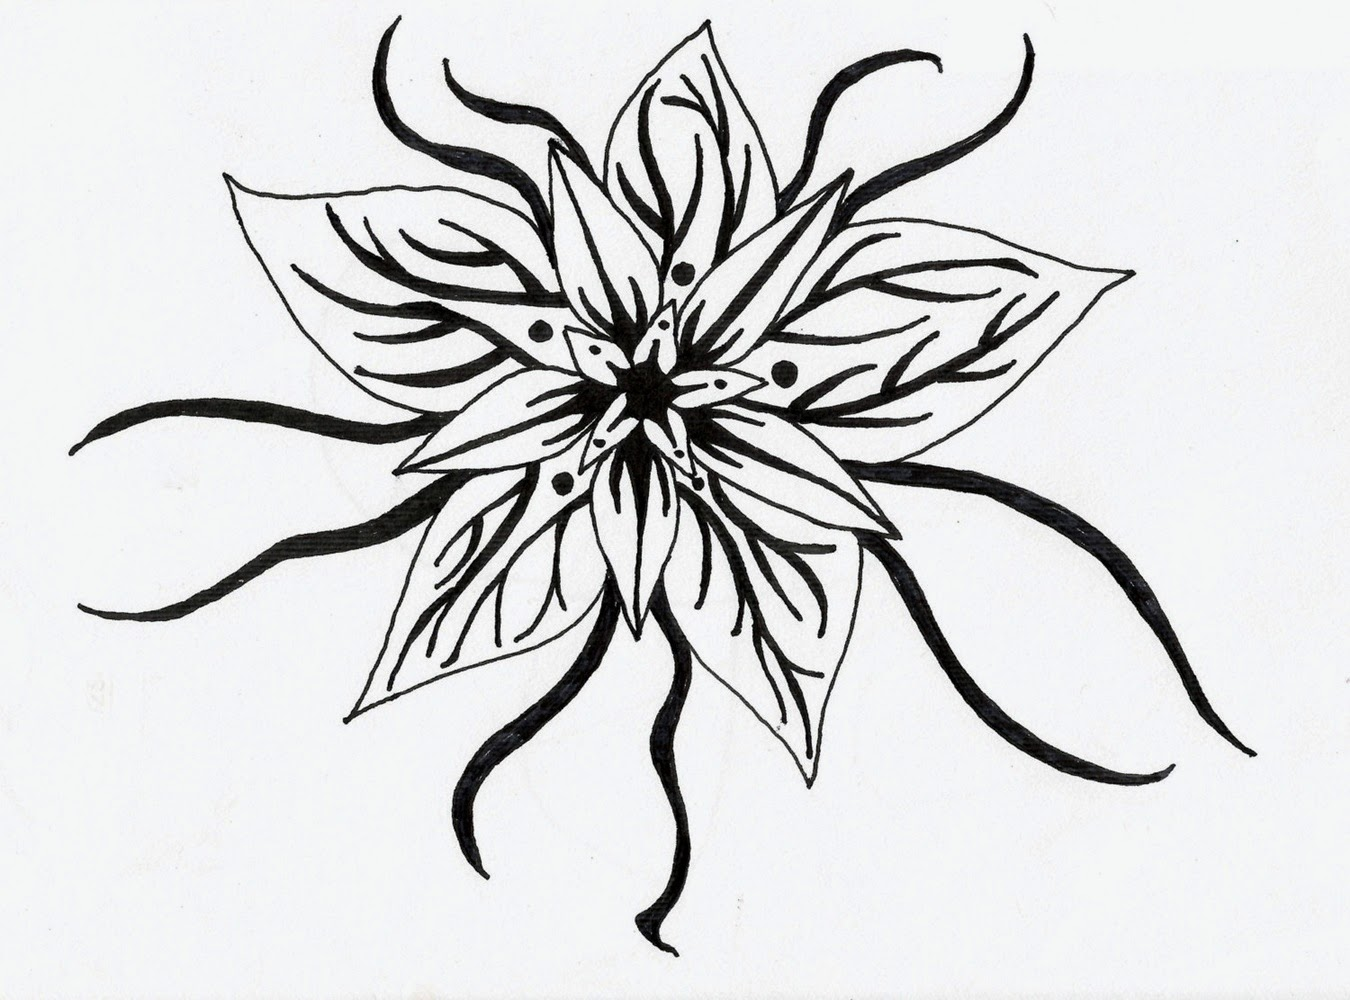 Black and White Flower Design | Many Flowers